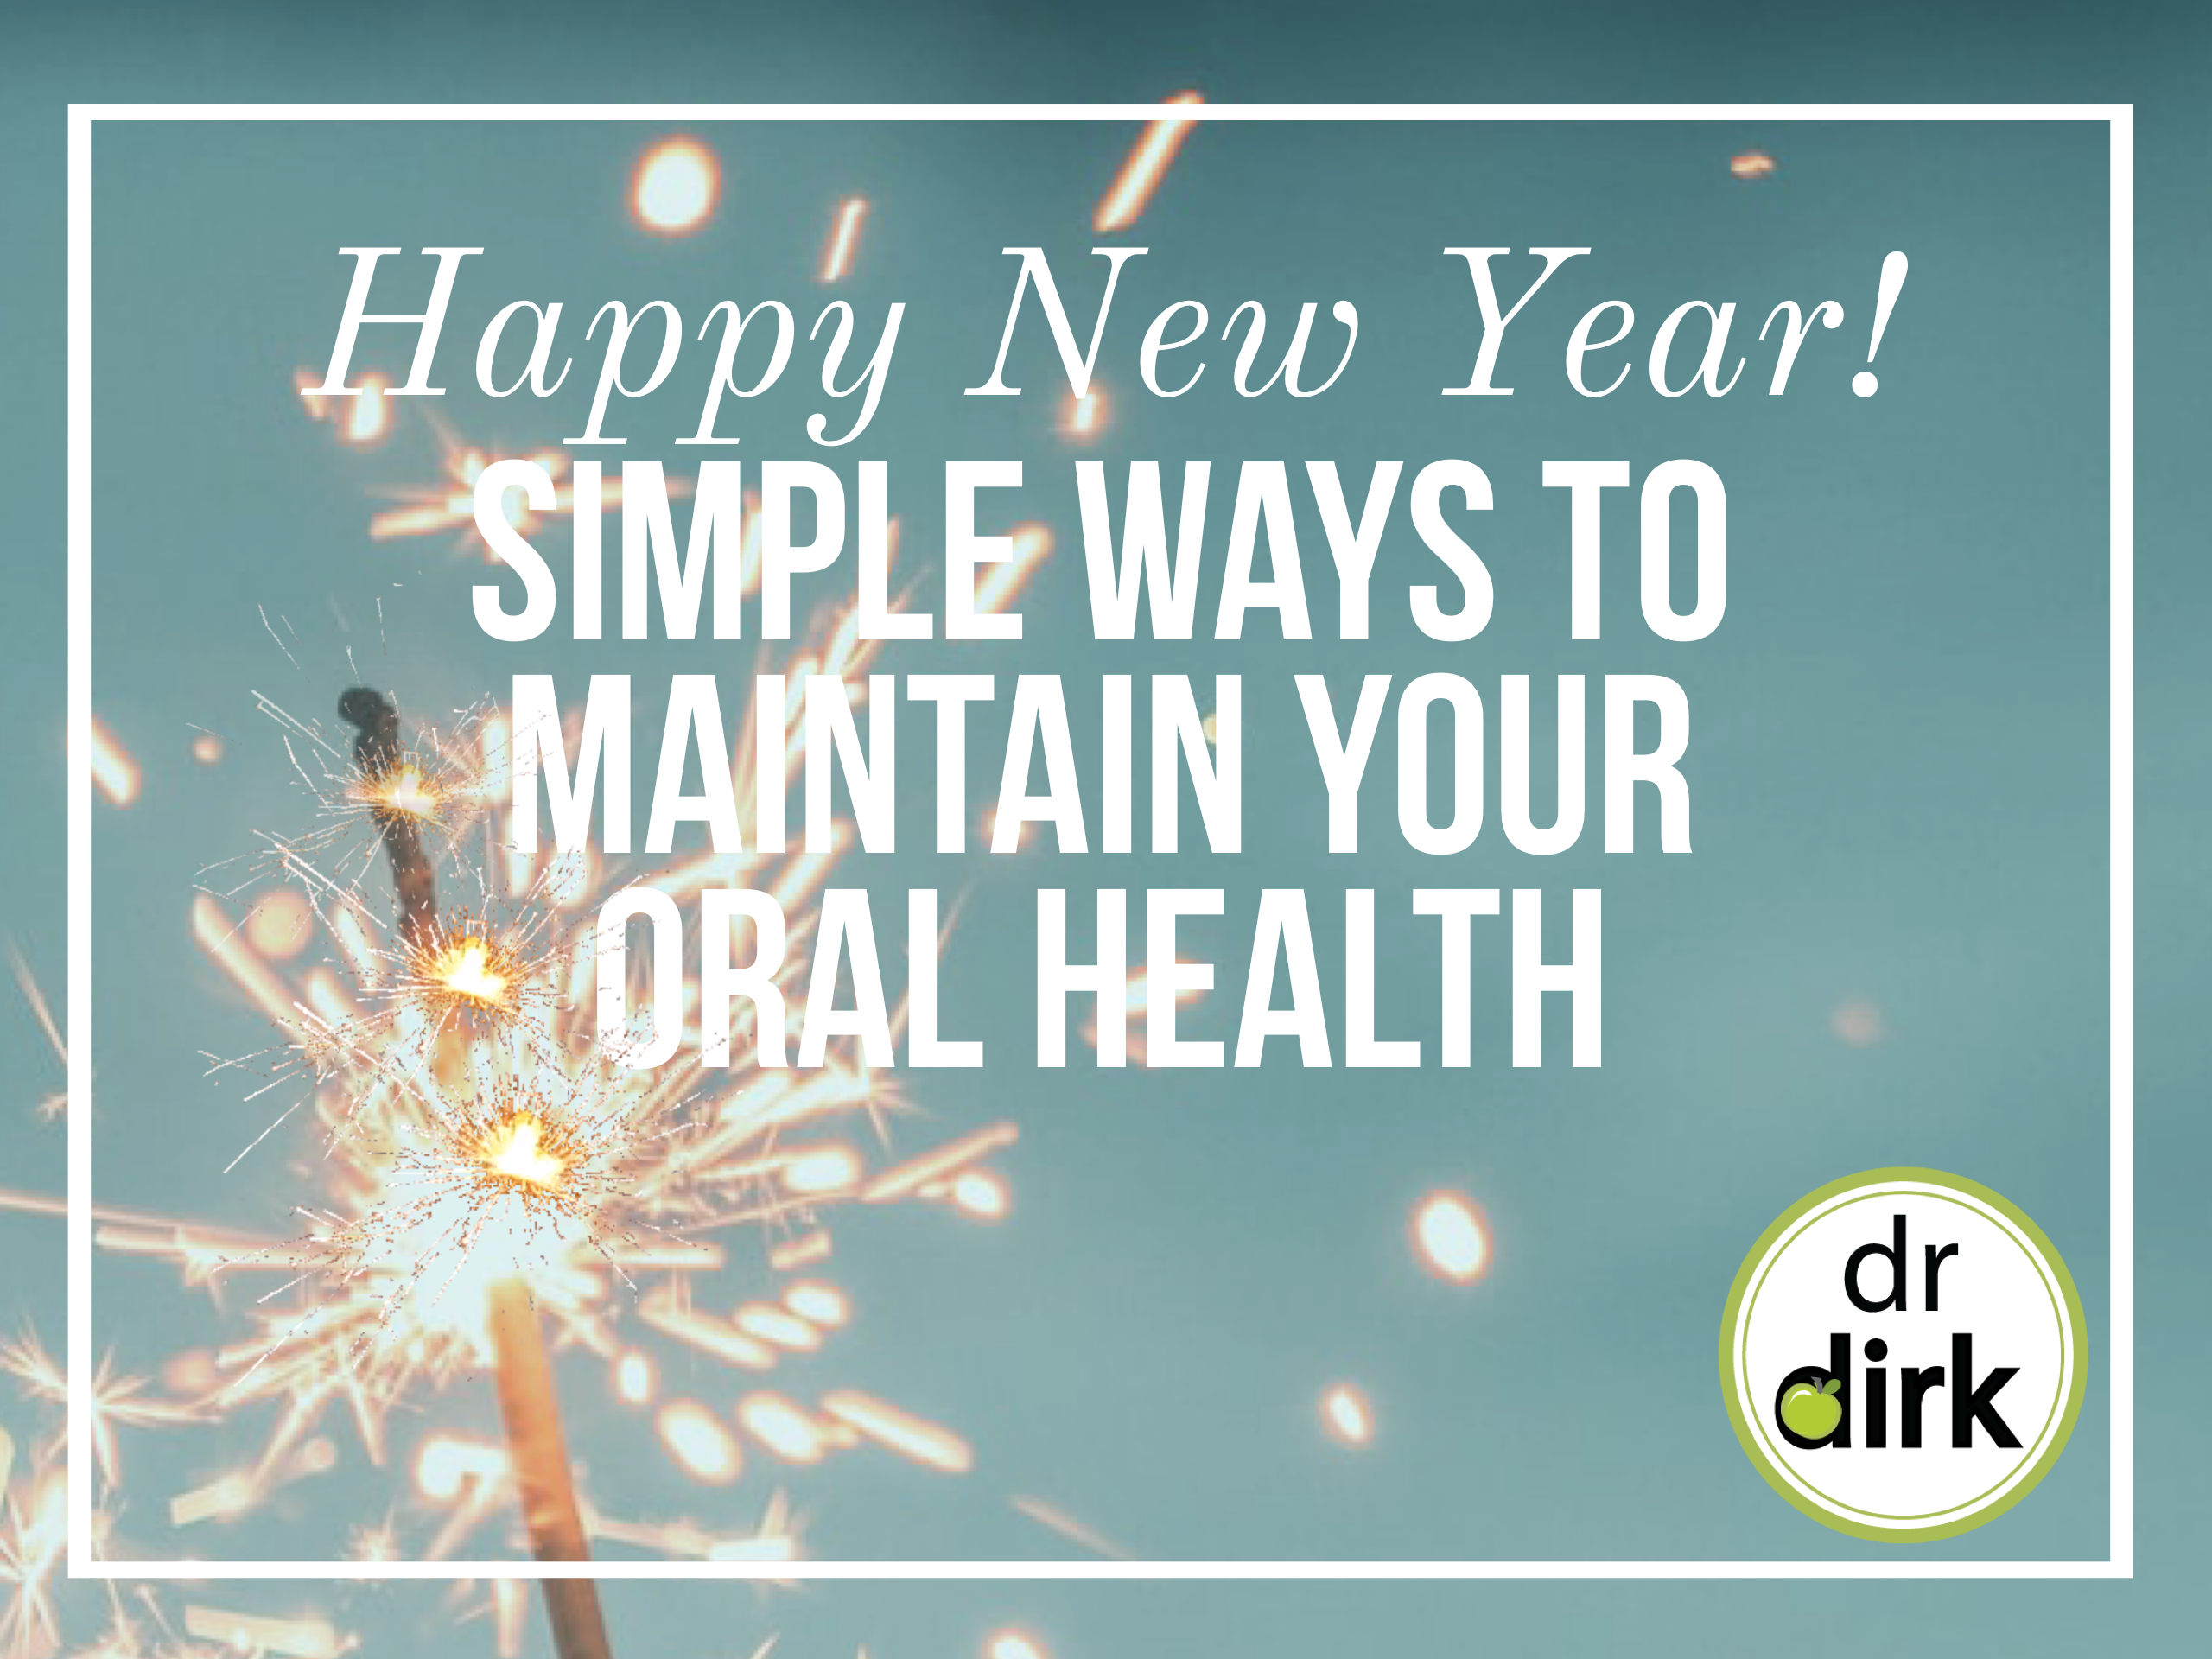 Simple Ways to Maintain Your Oral Health.